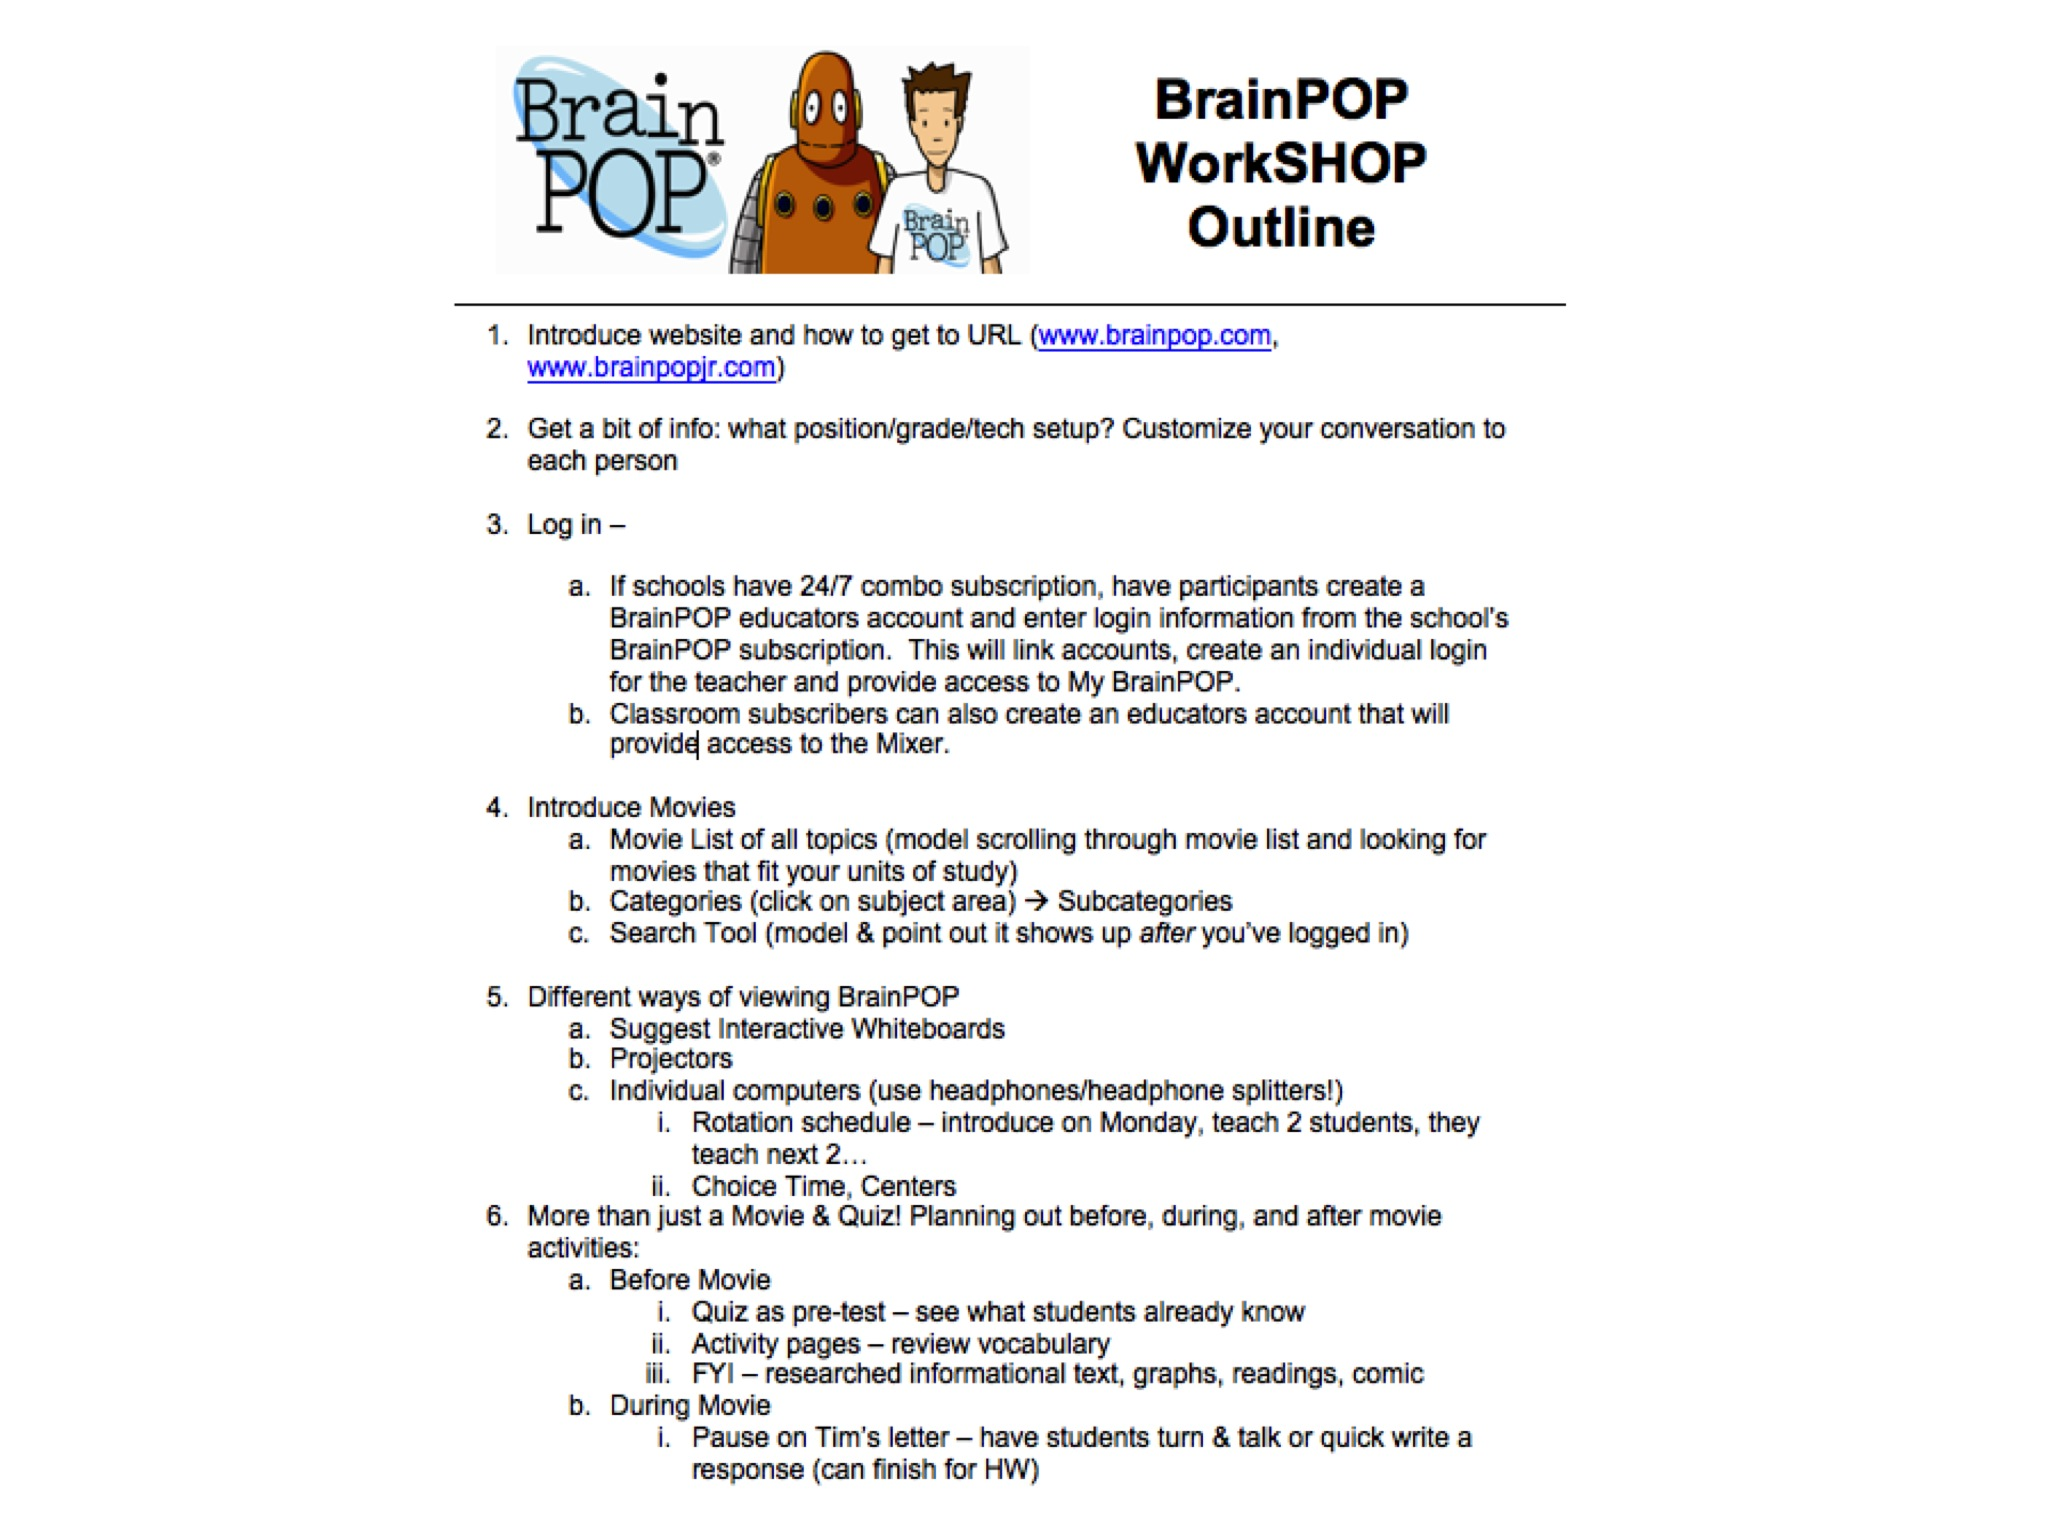 BrainPOP ESL Workshop Outline